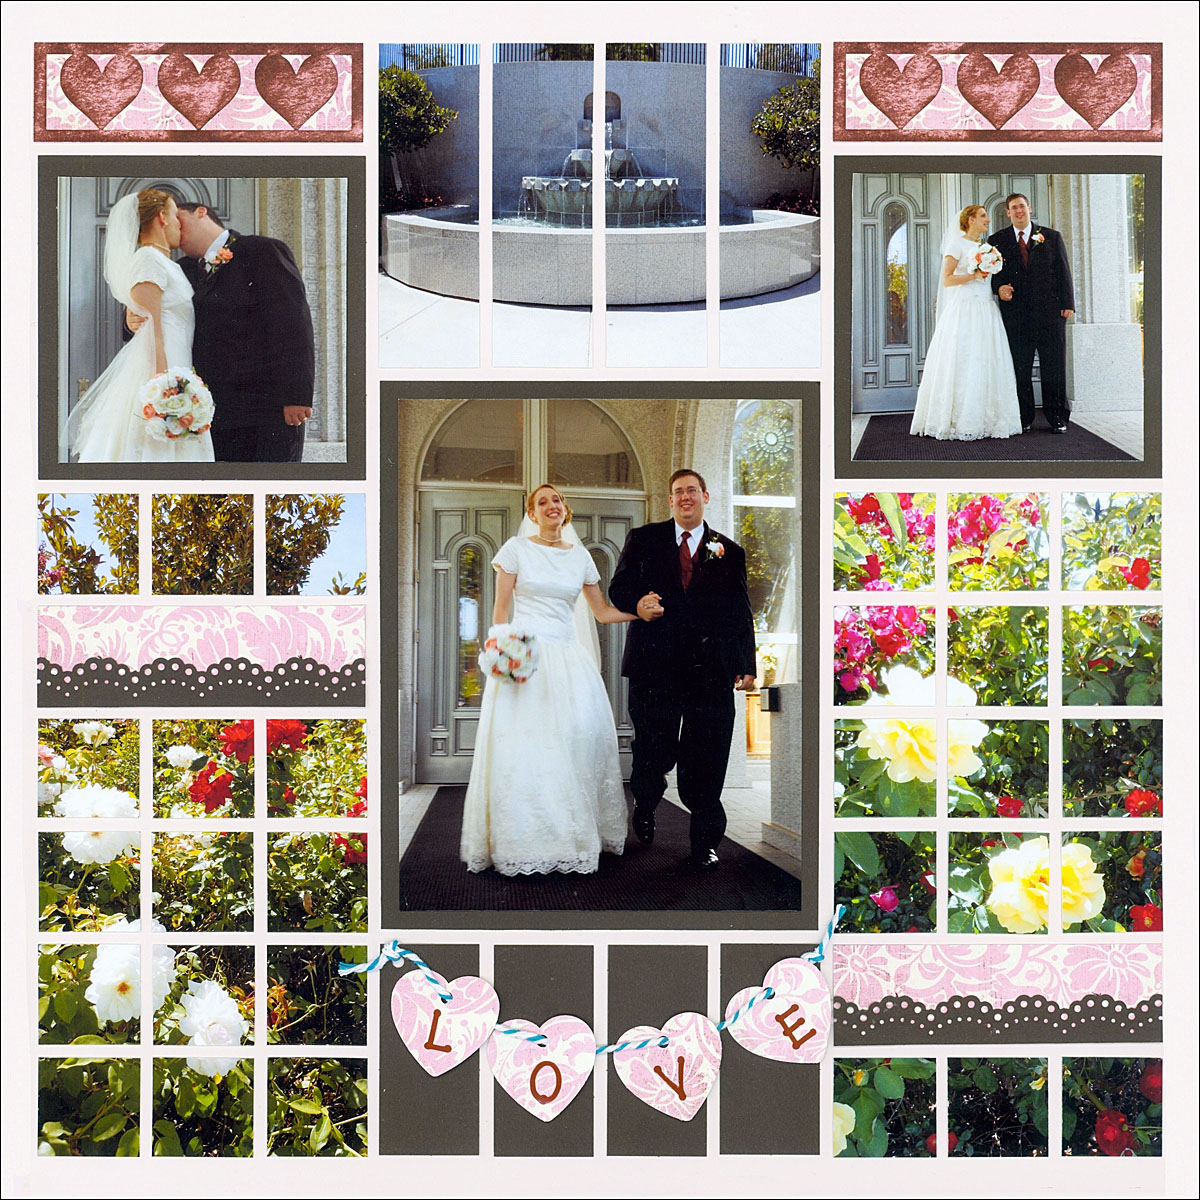 Wedding Scrapbook: 7 Beautiful Wedding Scrapbook Page Ideas You Need To